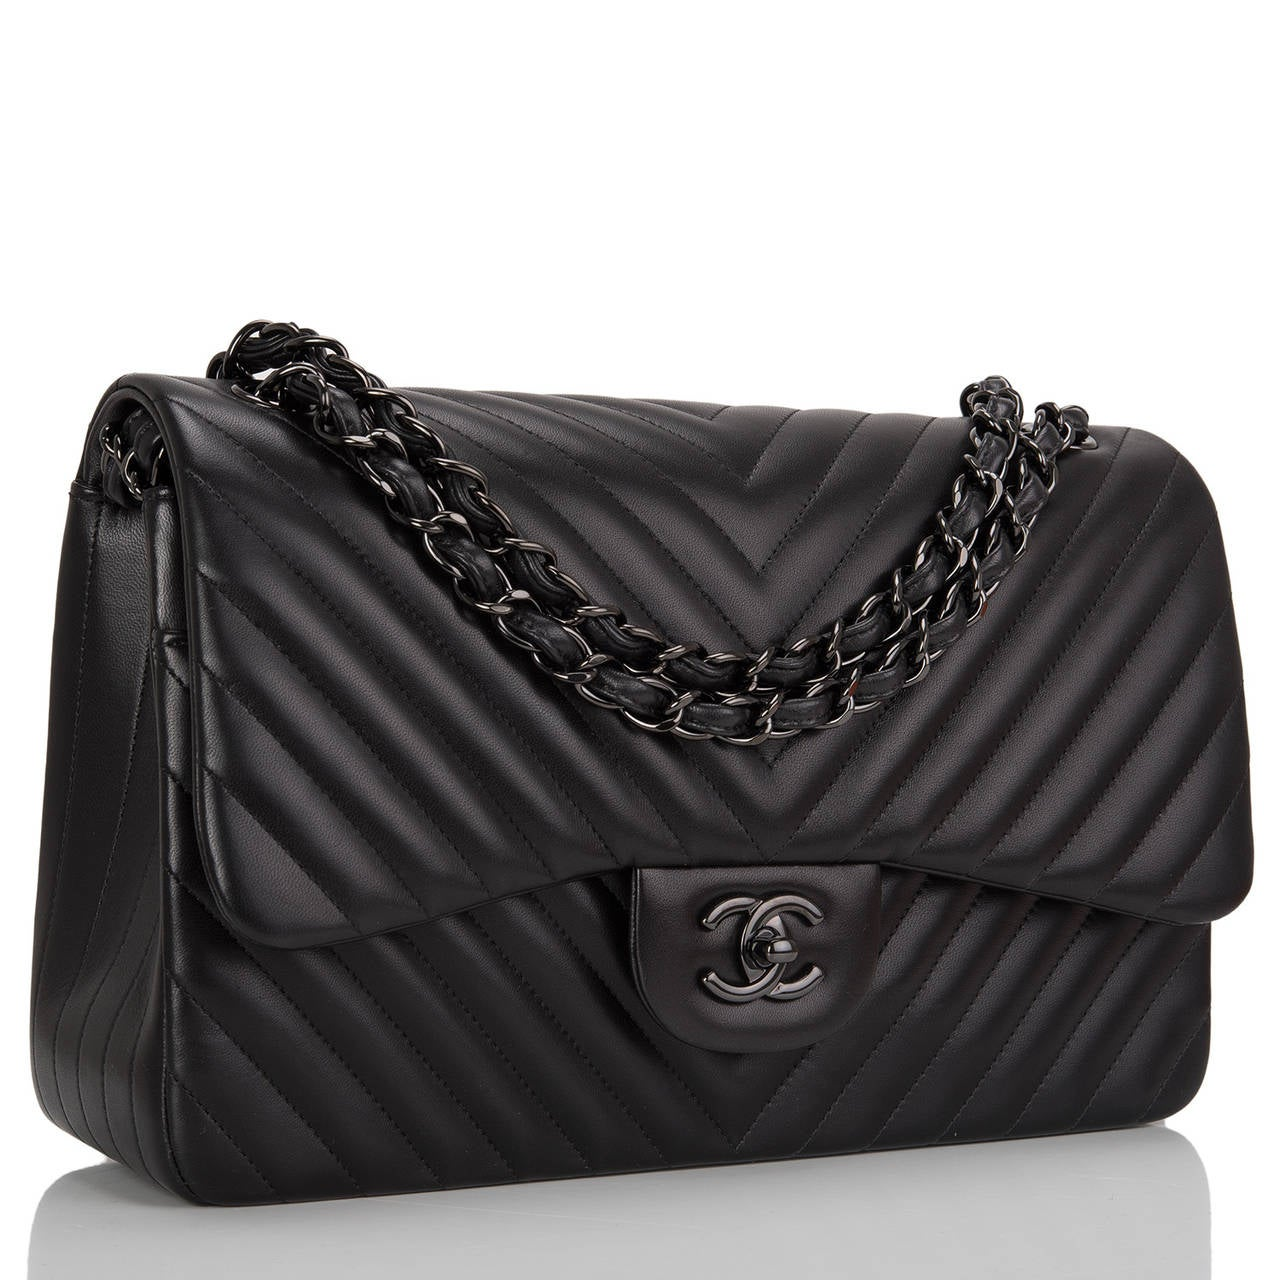 chanel so black chevron jumbo double flap bag at 1stdibs. Black Bedroom Furniture Sets. Home Design Ideas